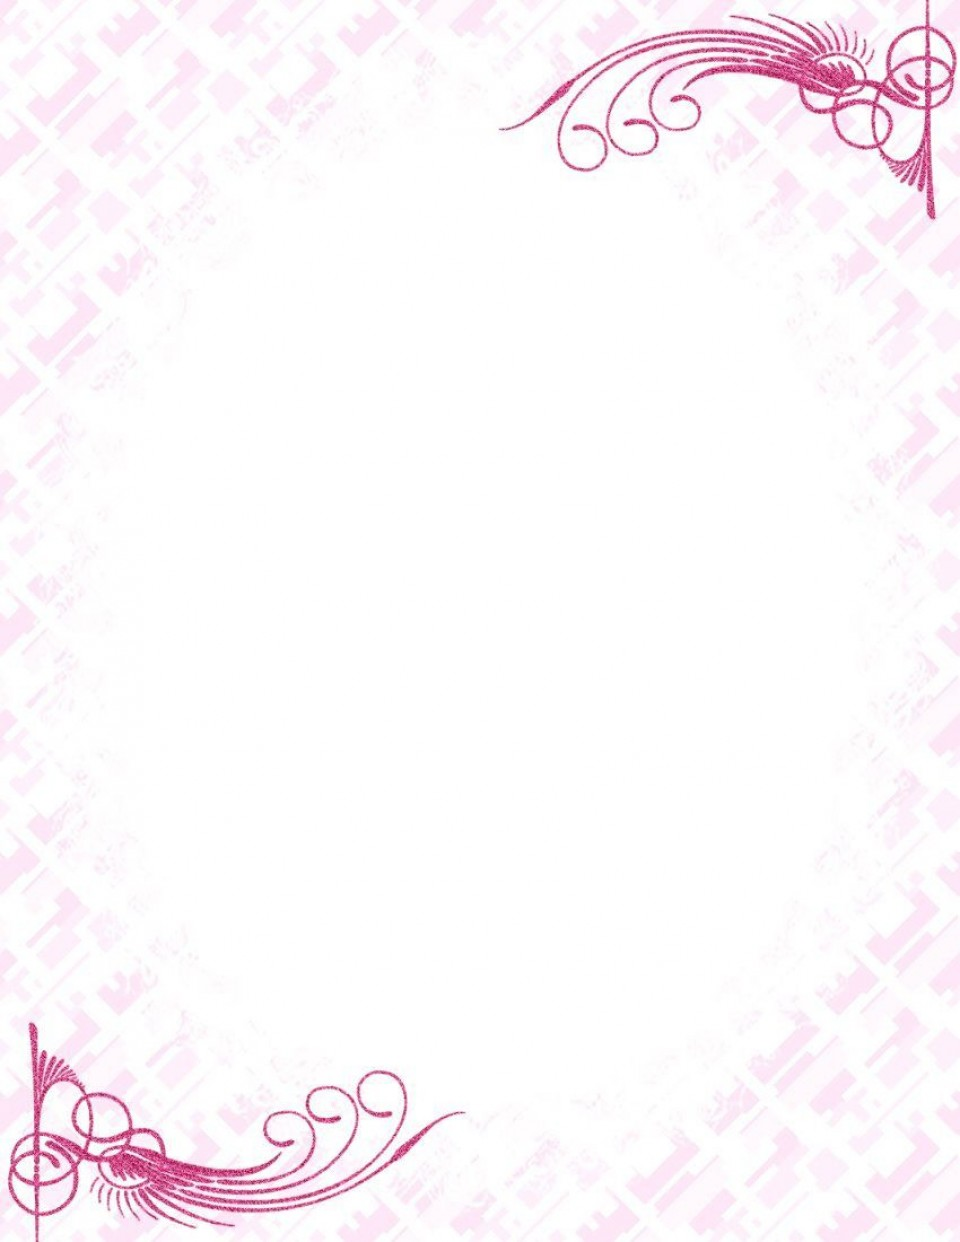 009 Top Free Printable Stationery Paper Template Highest Clarity 960